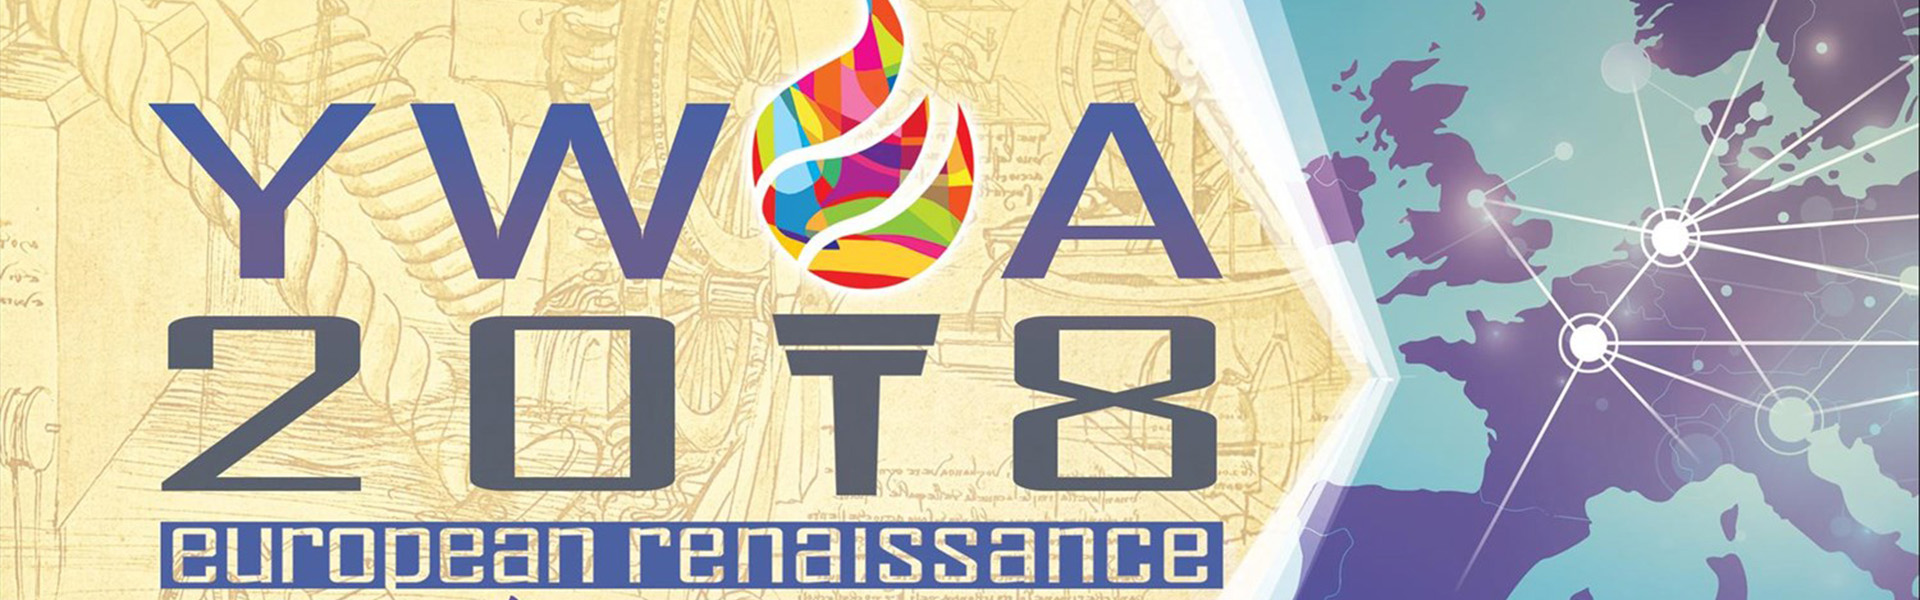 YWEA Missions Project